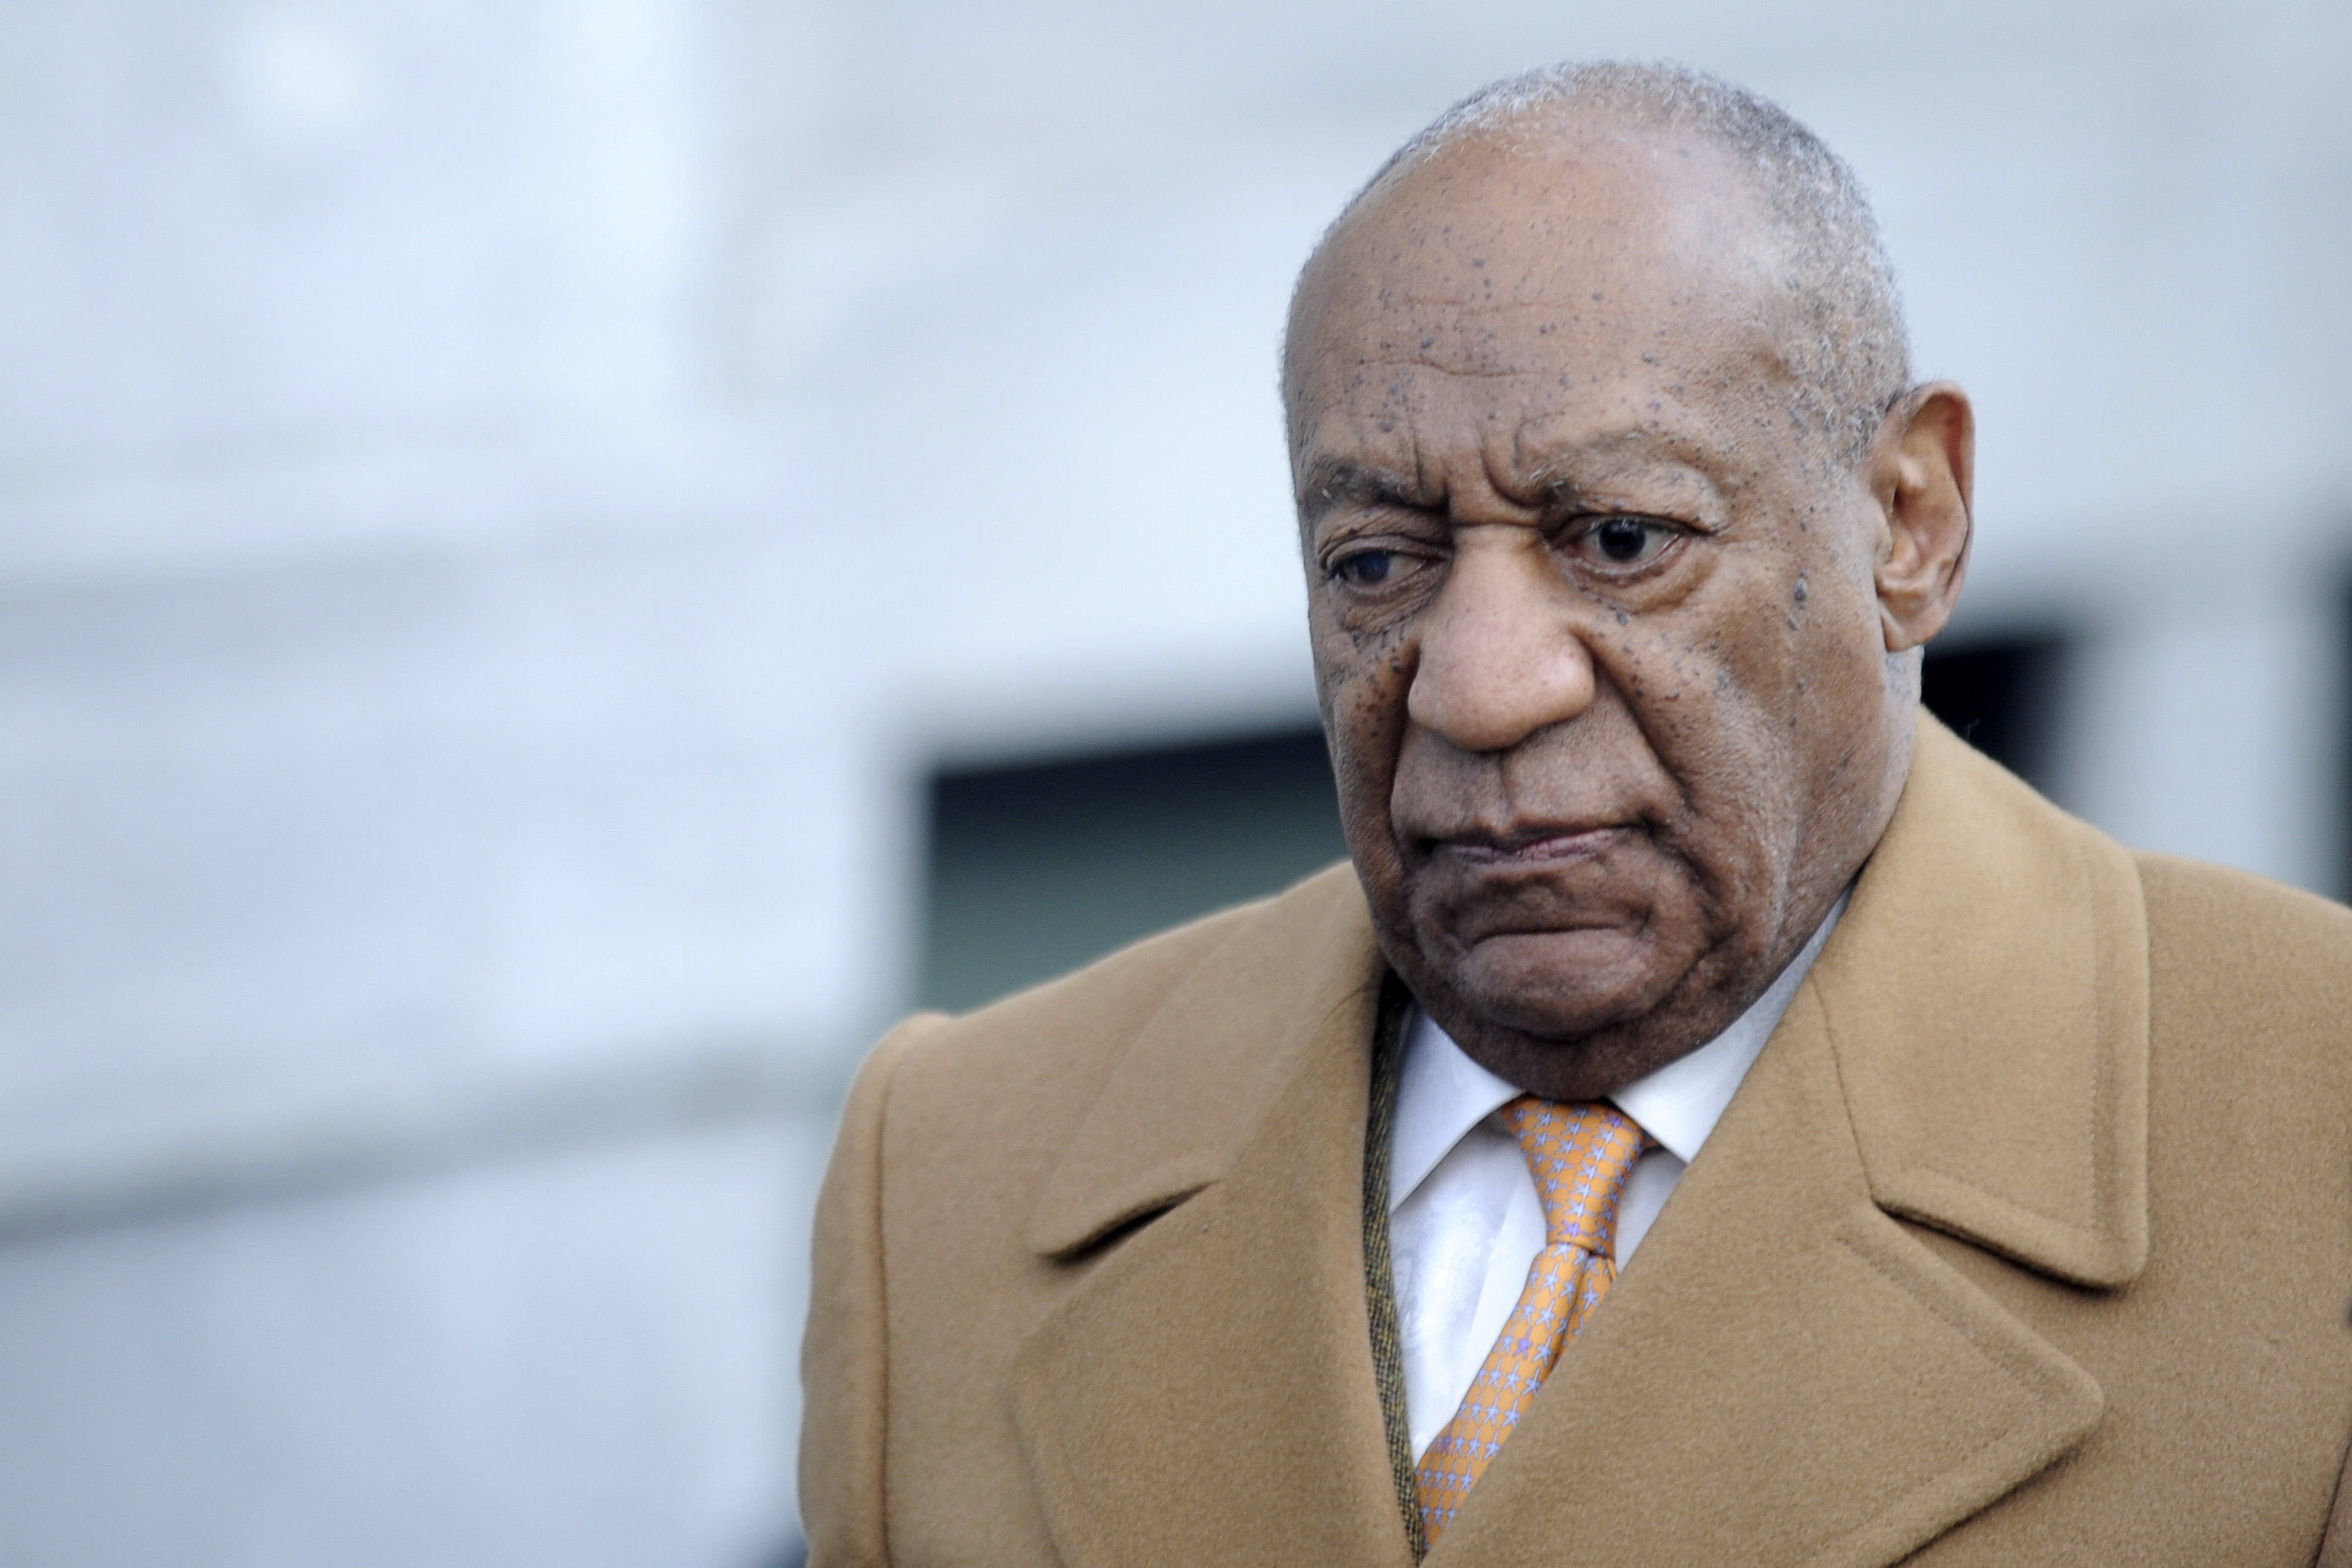 Fourth day of Bill Cosby's retrial for sexual assault charges